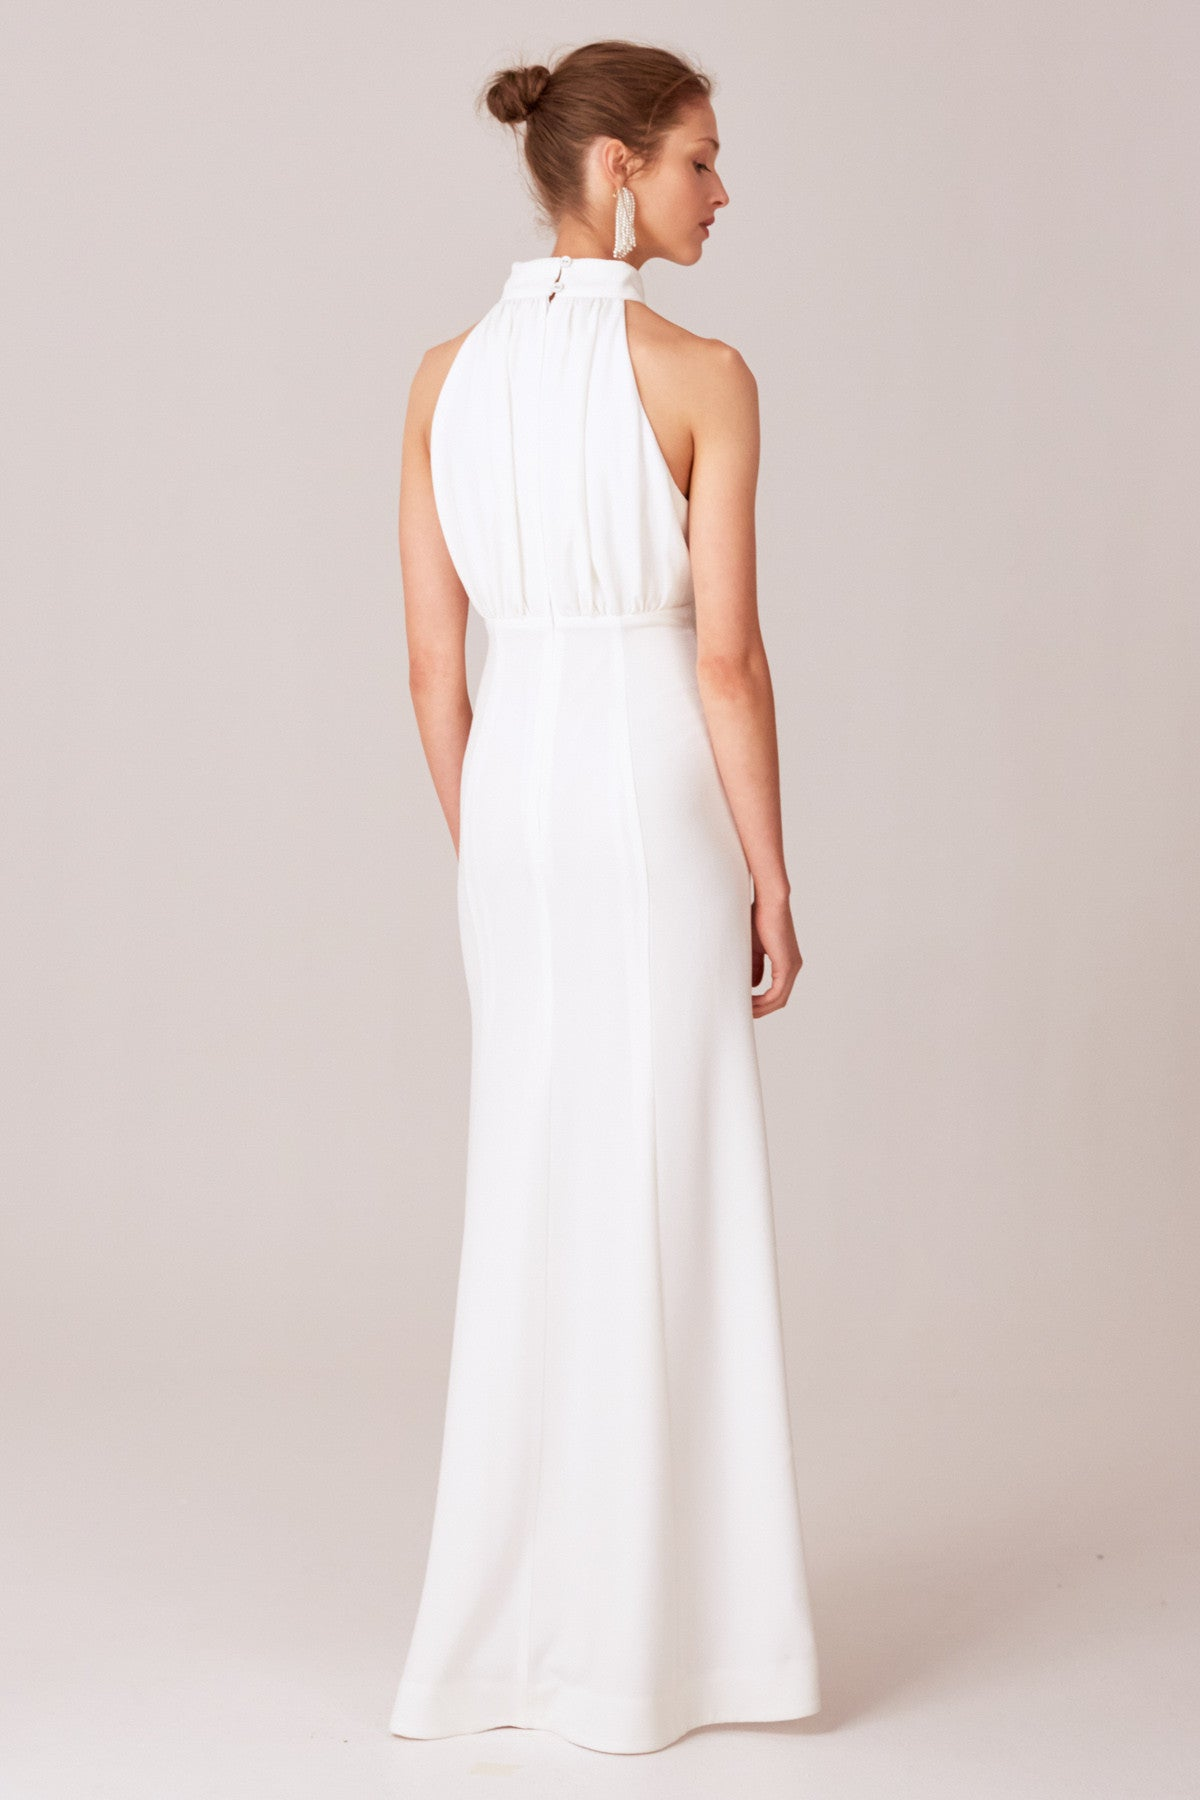 WILLING GOWN ivory